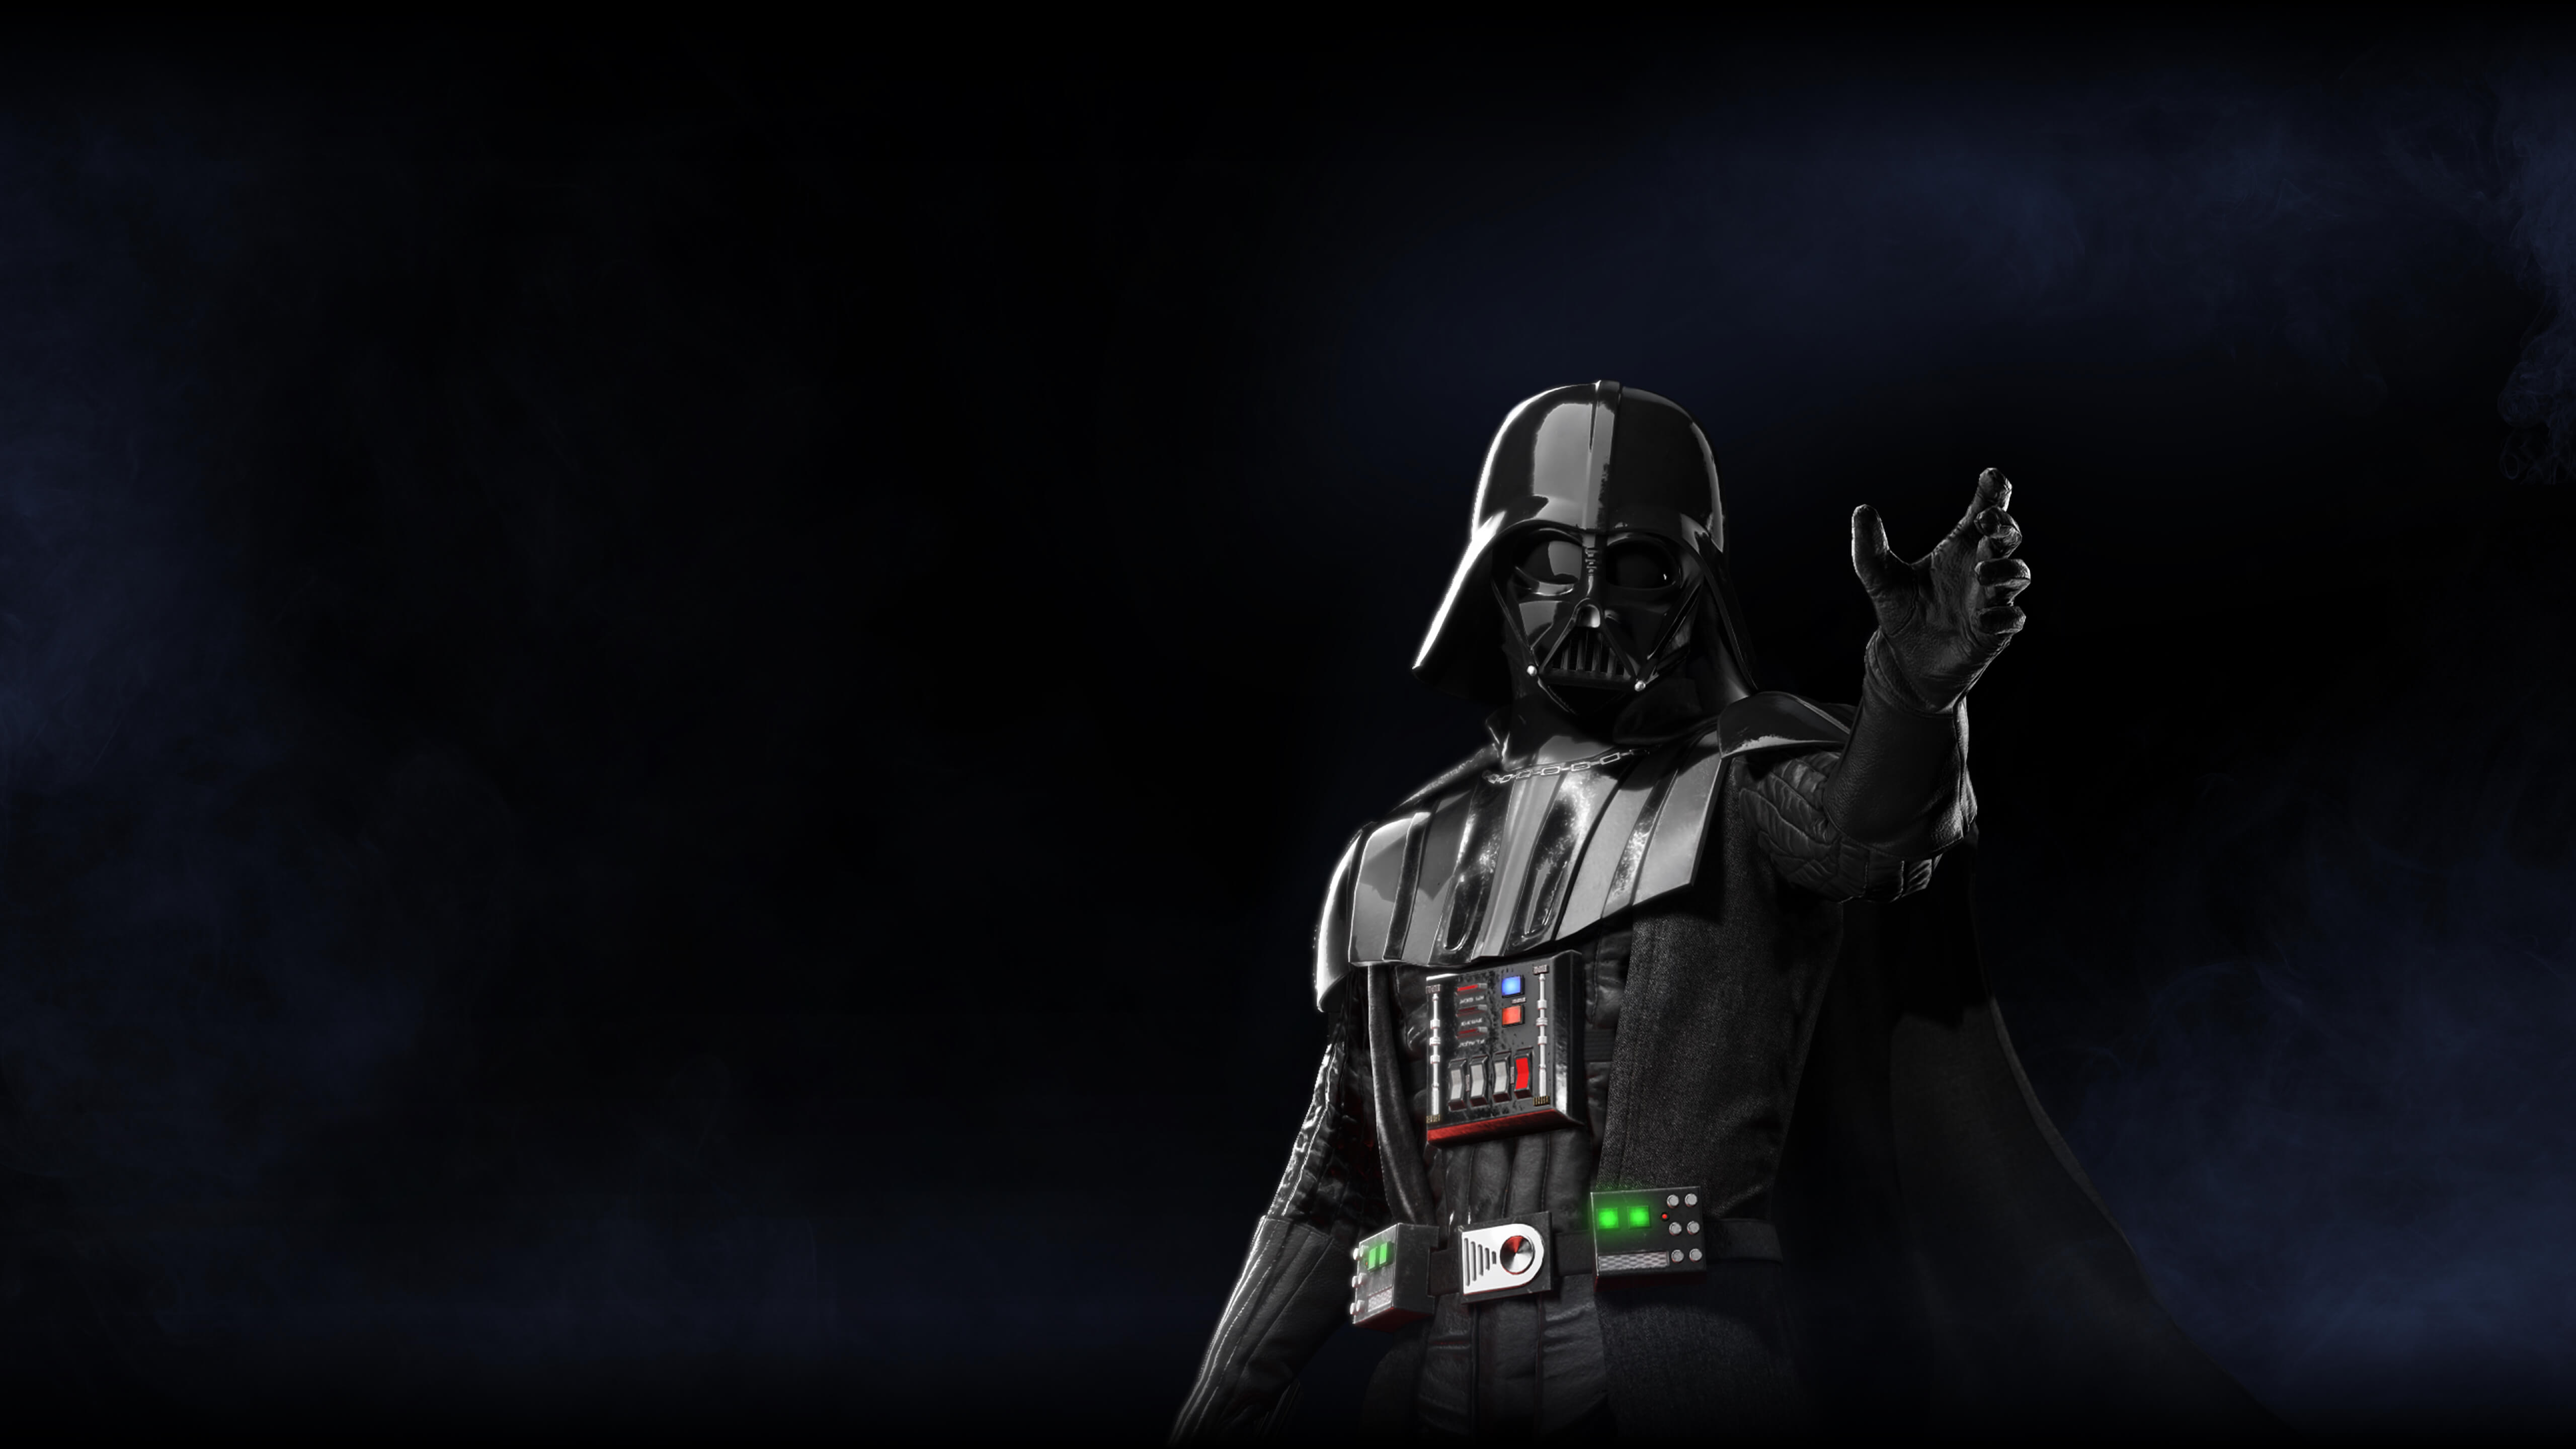 1080x1920 Darth Vader Star Wars Battlefront 2 Iphone 7,6s